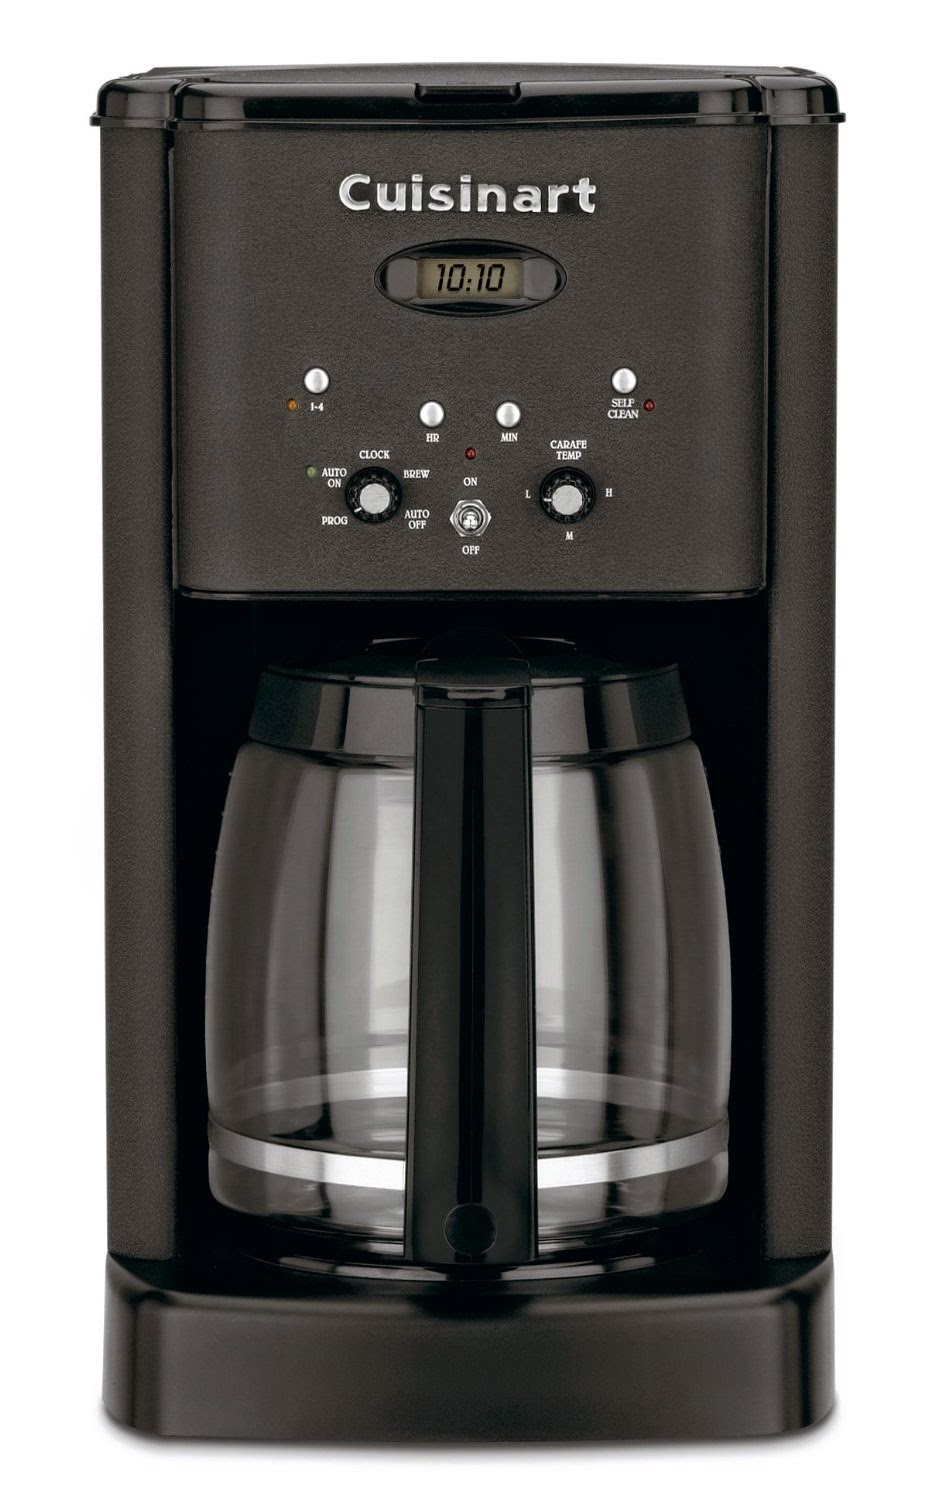 Cuisinart Coffee Maker Turn Off Beep : Home, Garden & More...: Cuisinart DCC-1200 Brew Central 12-Cup Programmable Coffeemaker, Review ...